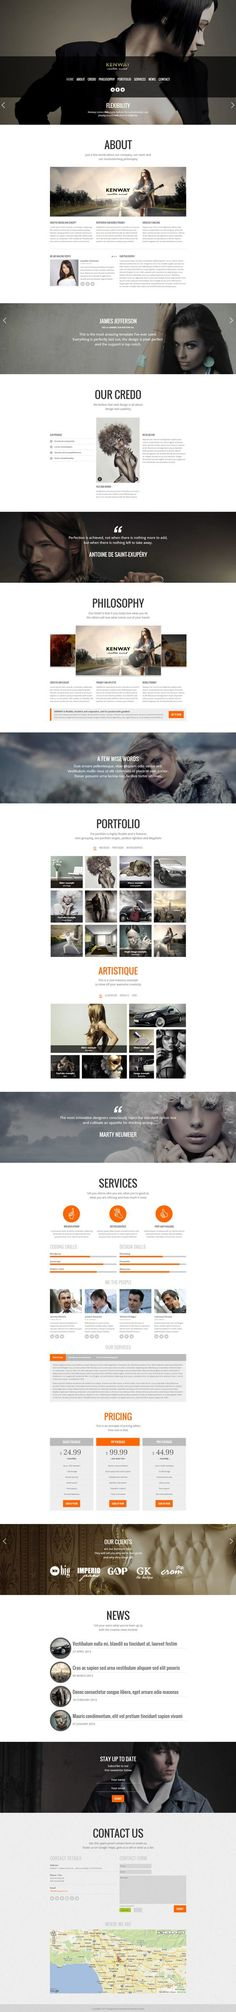 29 best black white website collection images on pinterest page